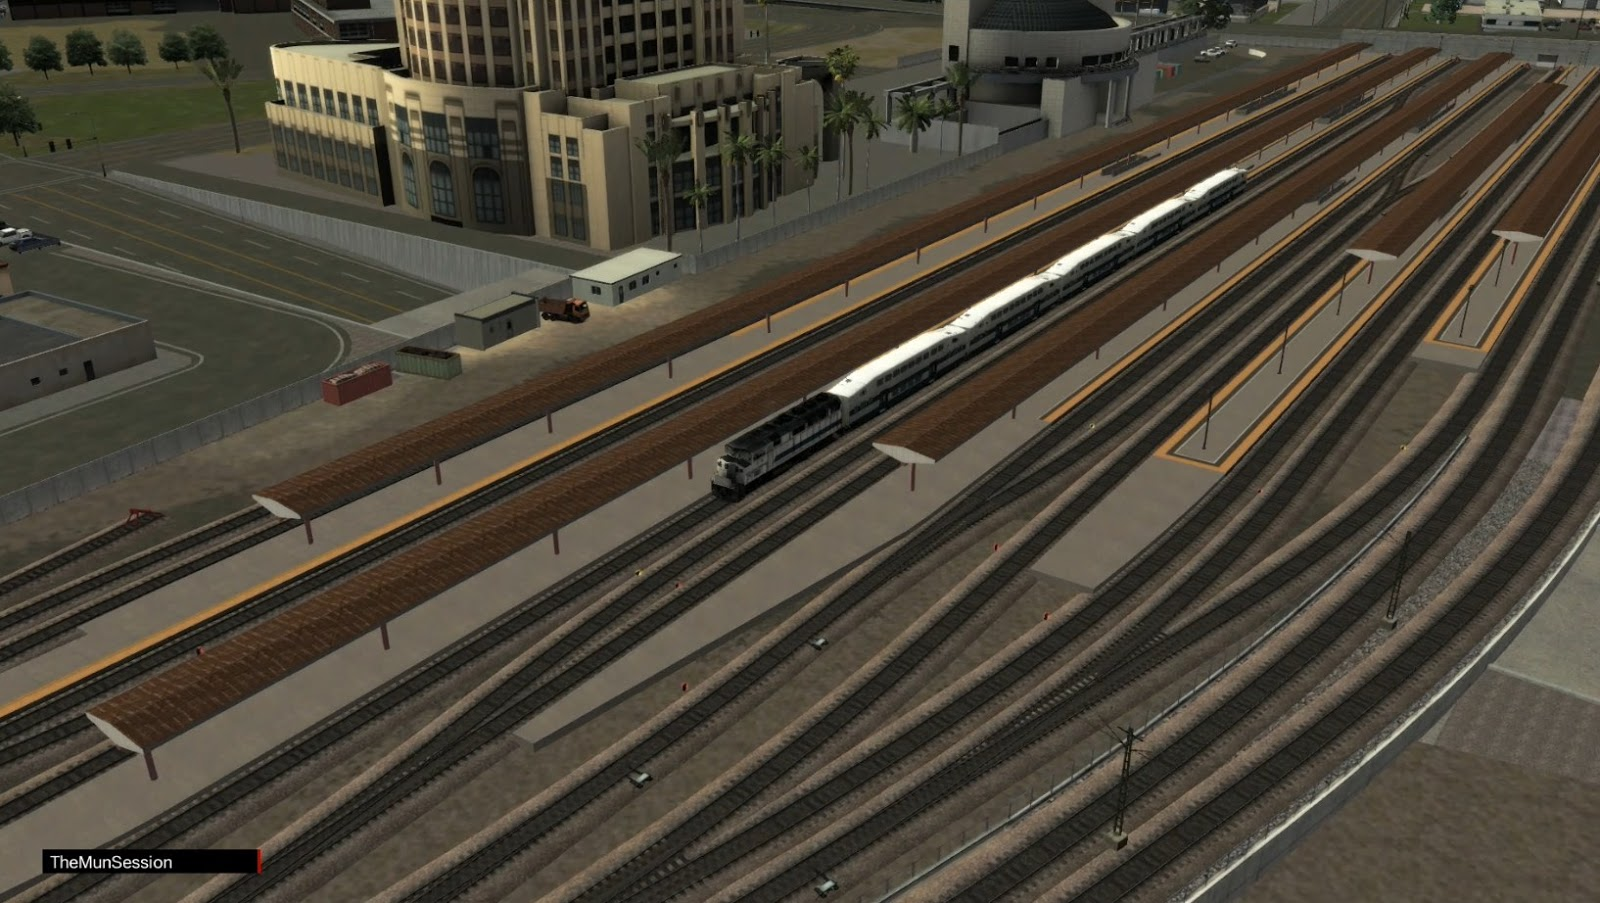 Train Simulator 2016 CD Key Generator 2016 Full Game Skidrow The Thrill-Yes, The Thrill-Of A Game Called